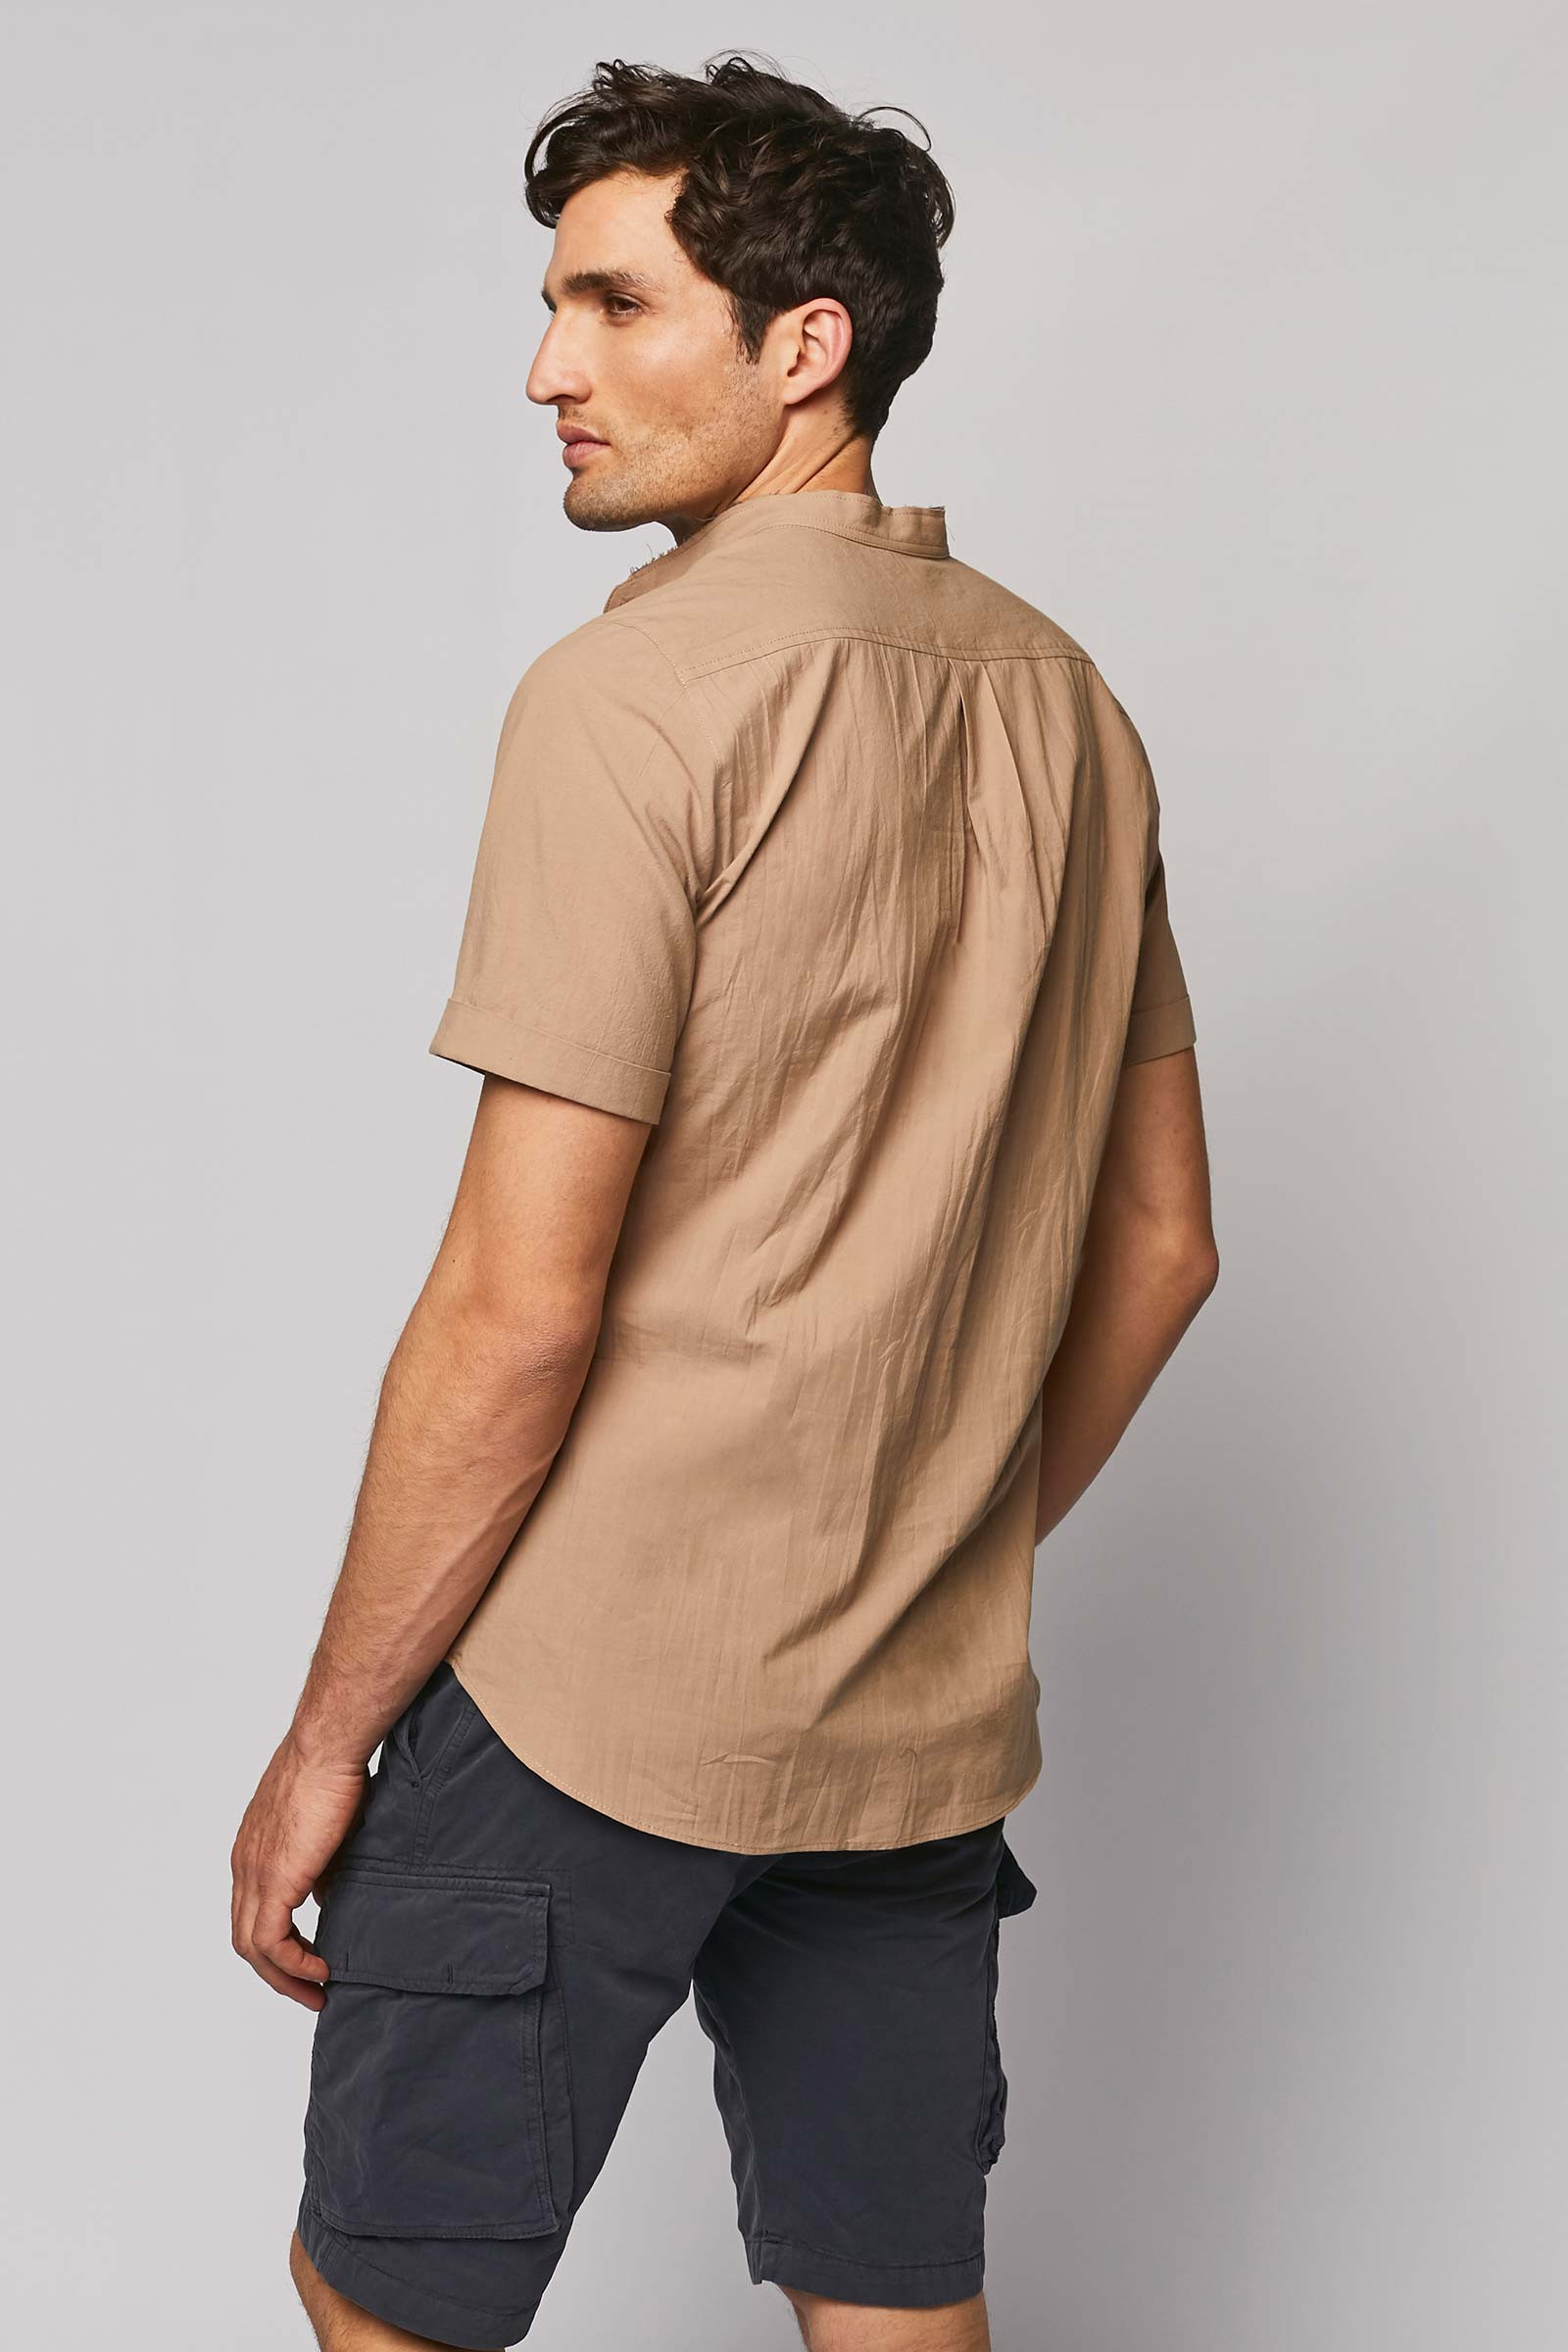 Discover This Beige Shirt back